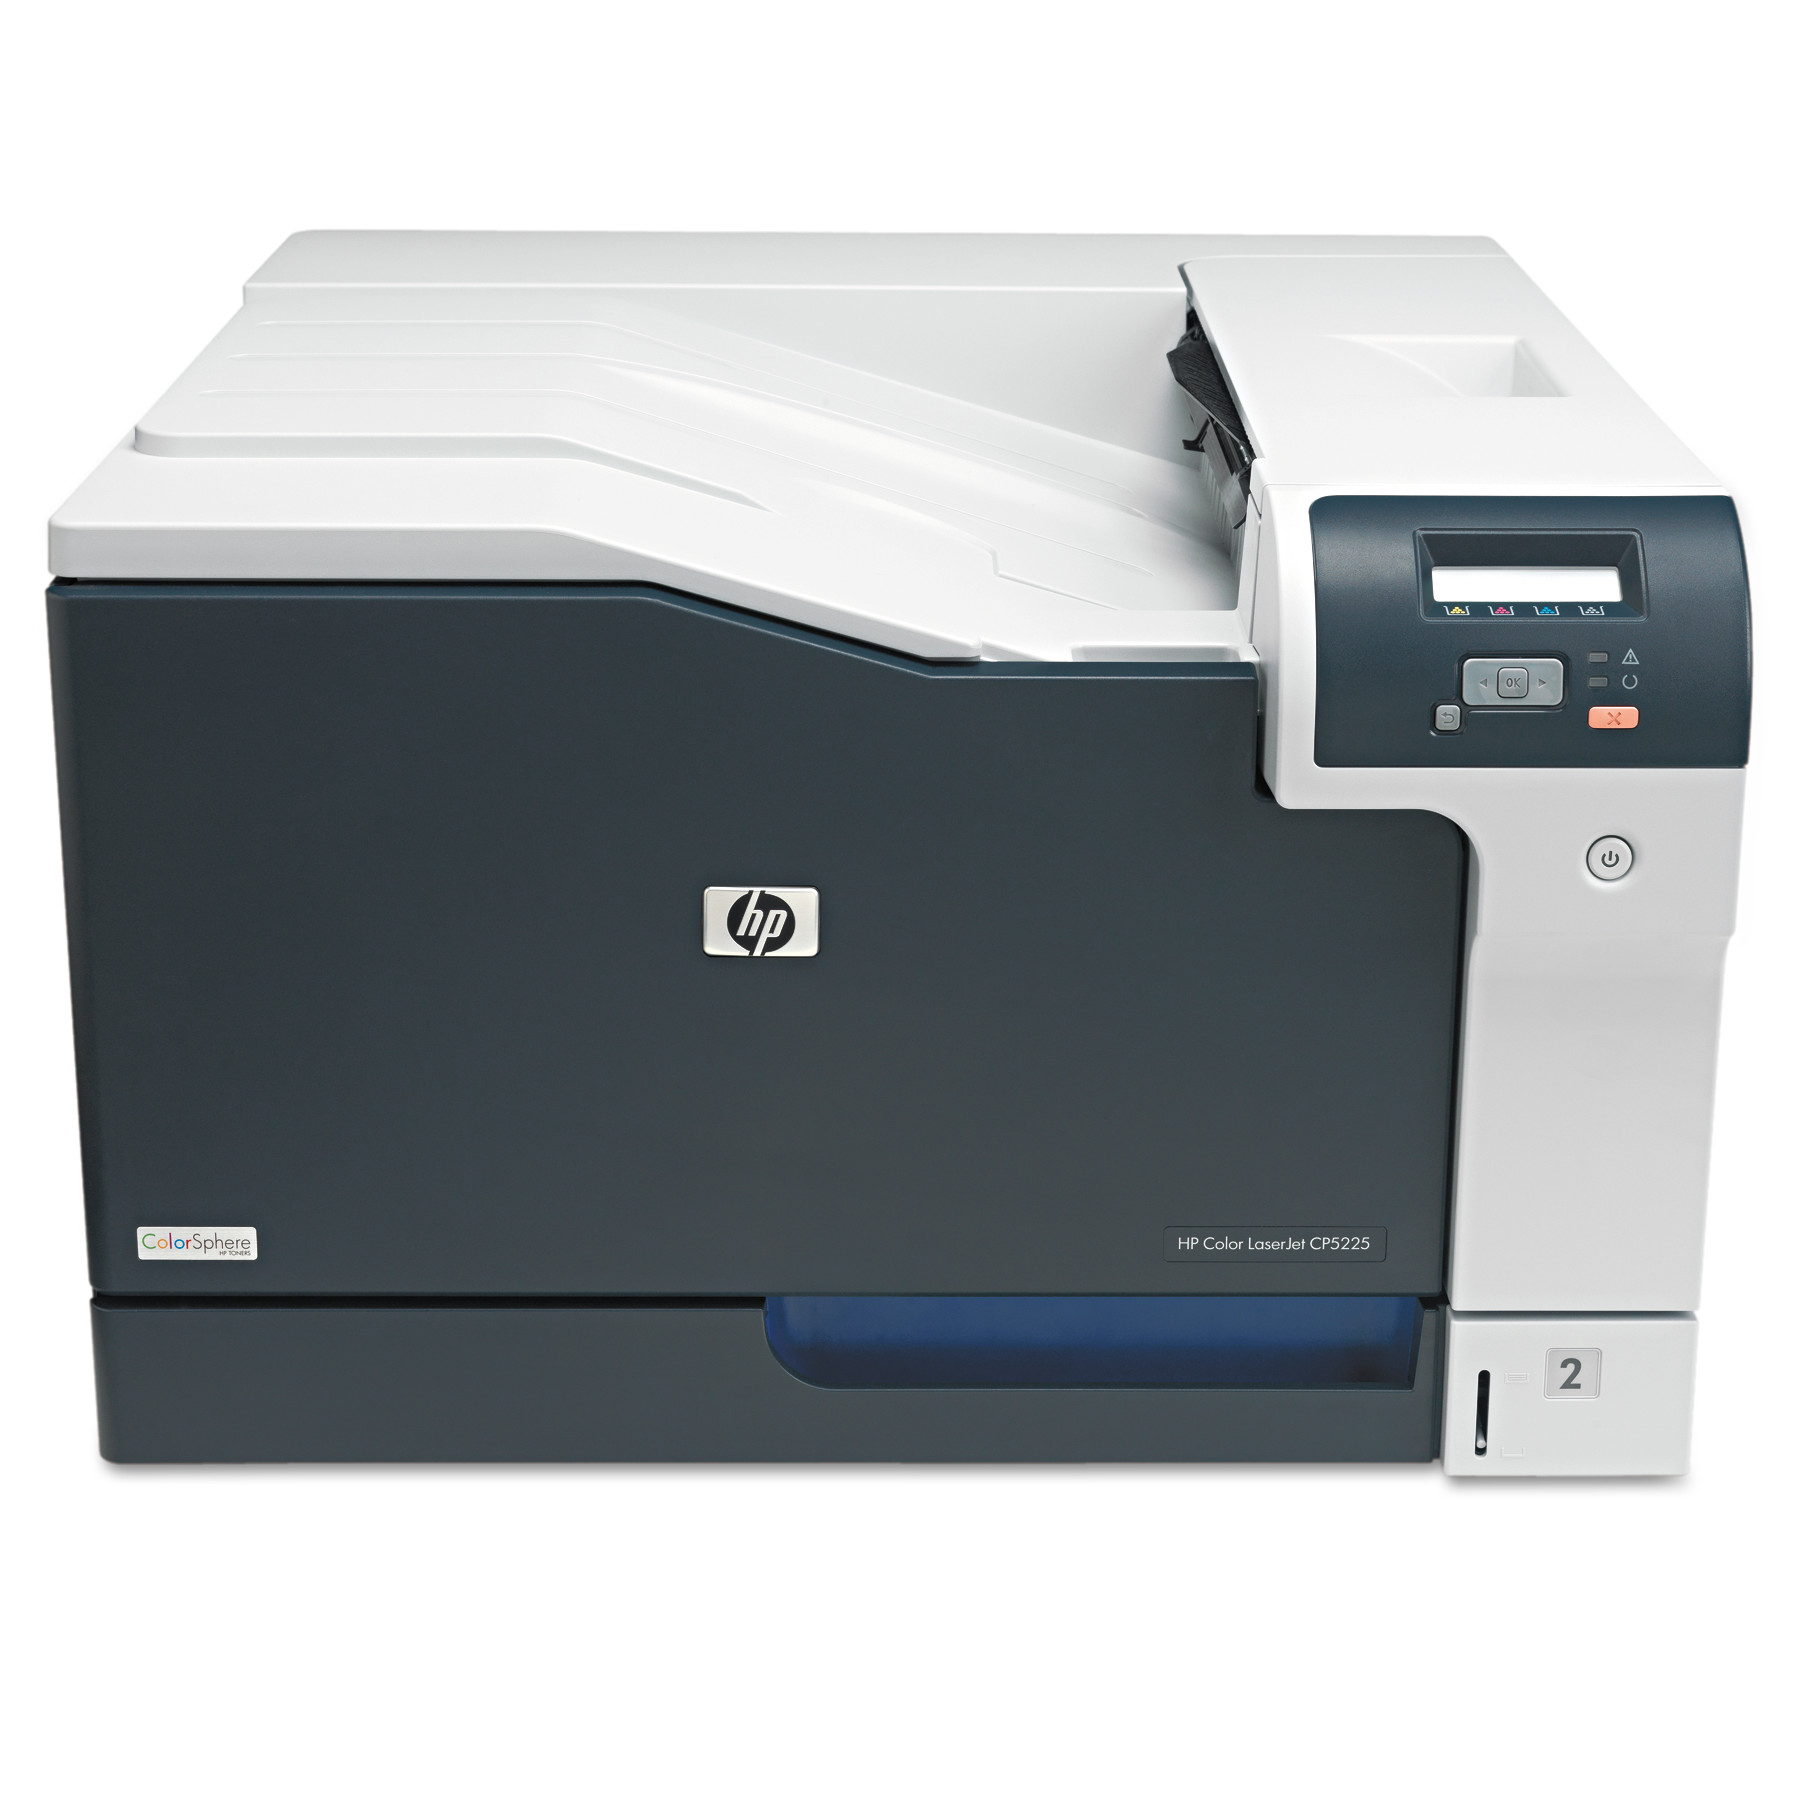 HP Color LaserJet Professional CP5225n Laser Printer by HP